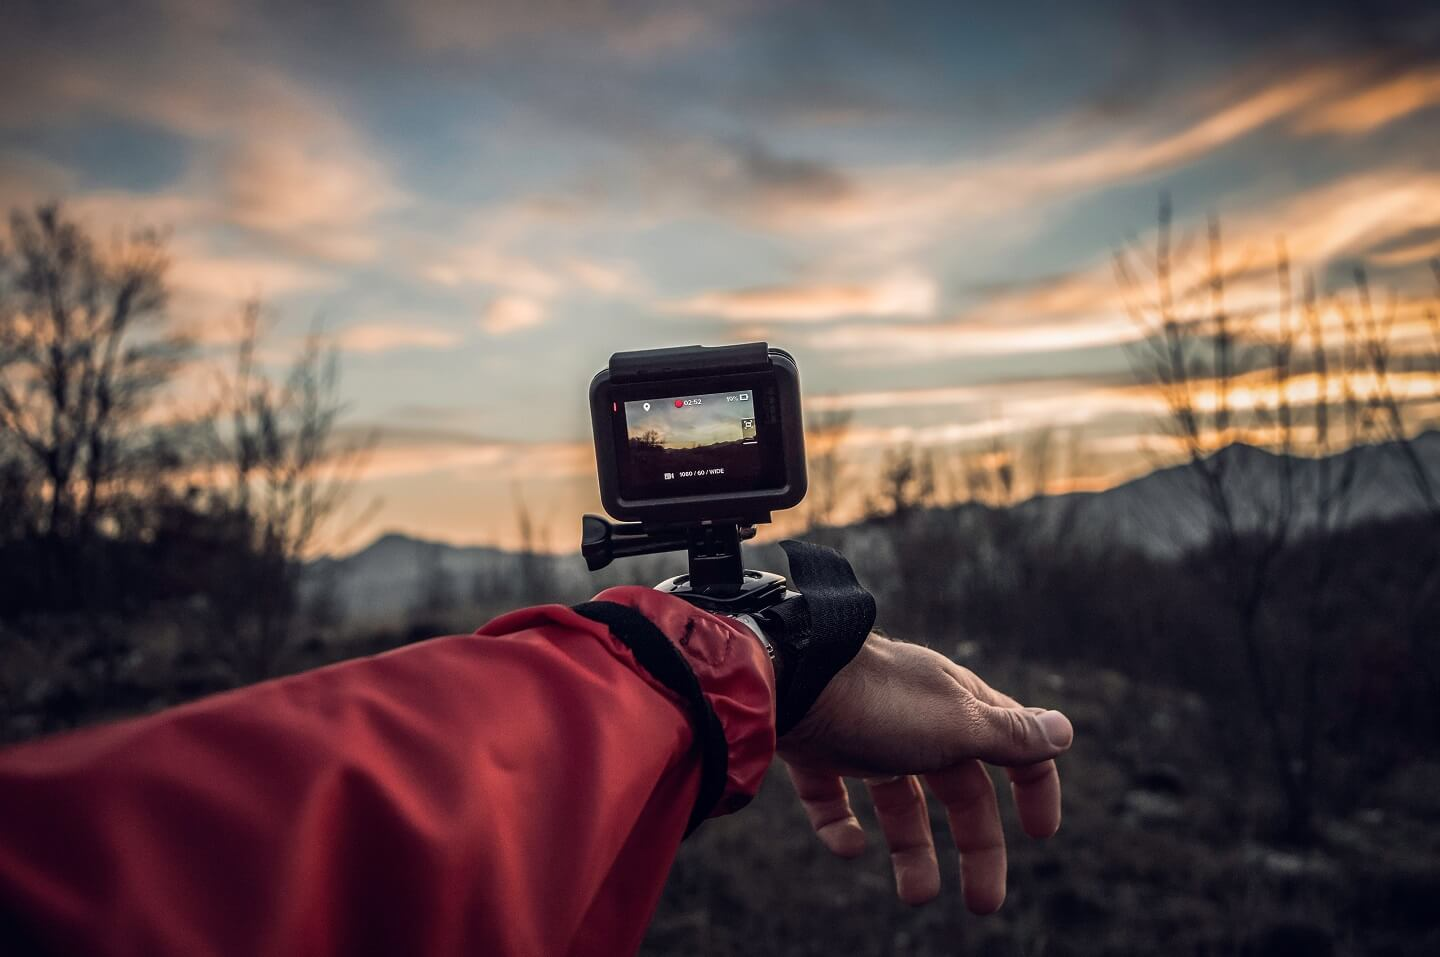 An arm outstretched with a GoPro mounted on the wrist capturing a scenic sunrise in the mountains.